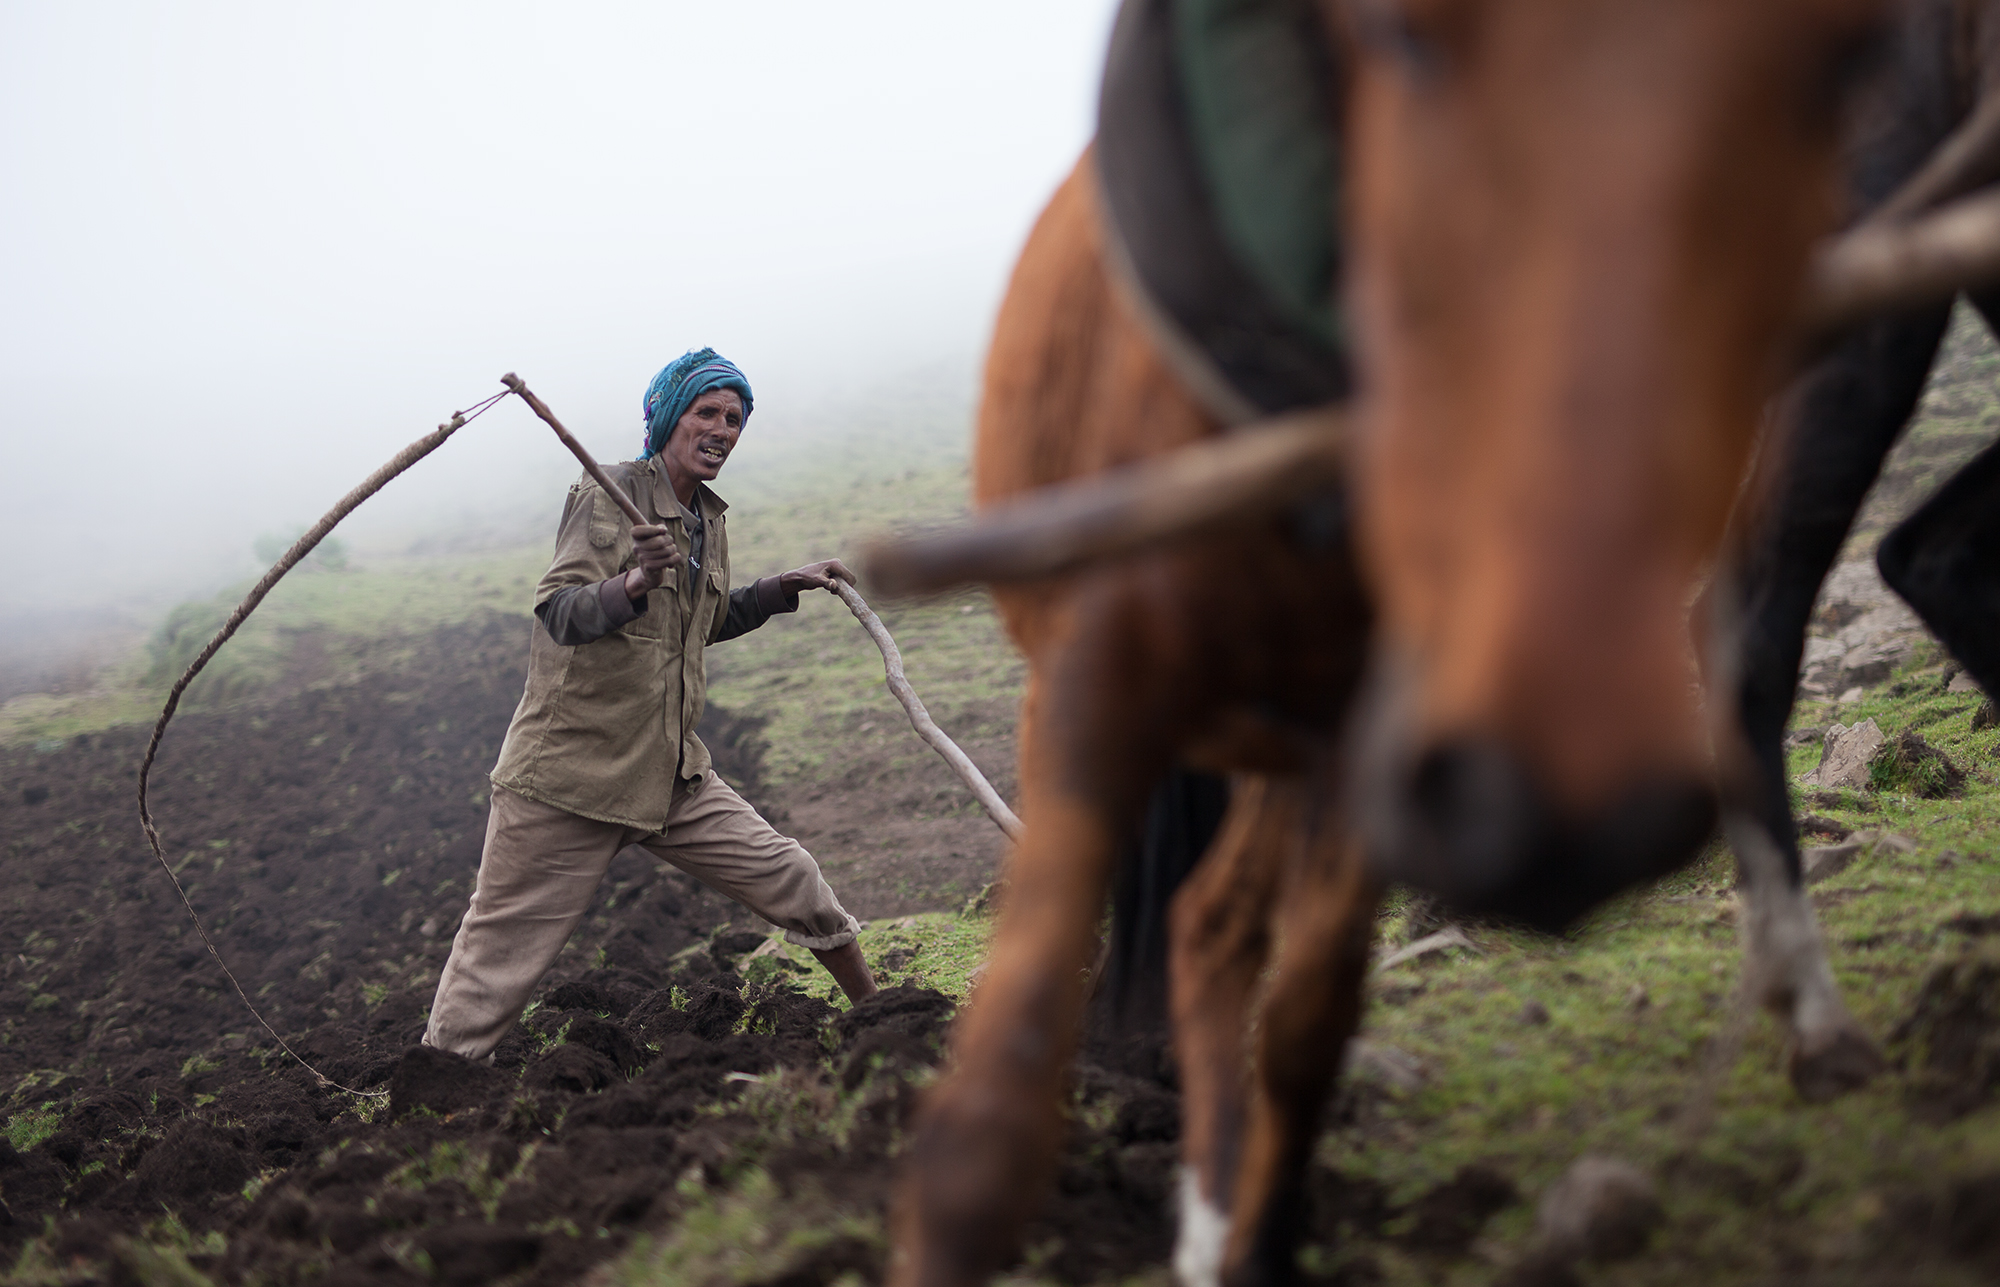 Negus Mahari is plowing his field on the Sona Plateau in the Simien Mountains